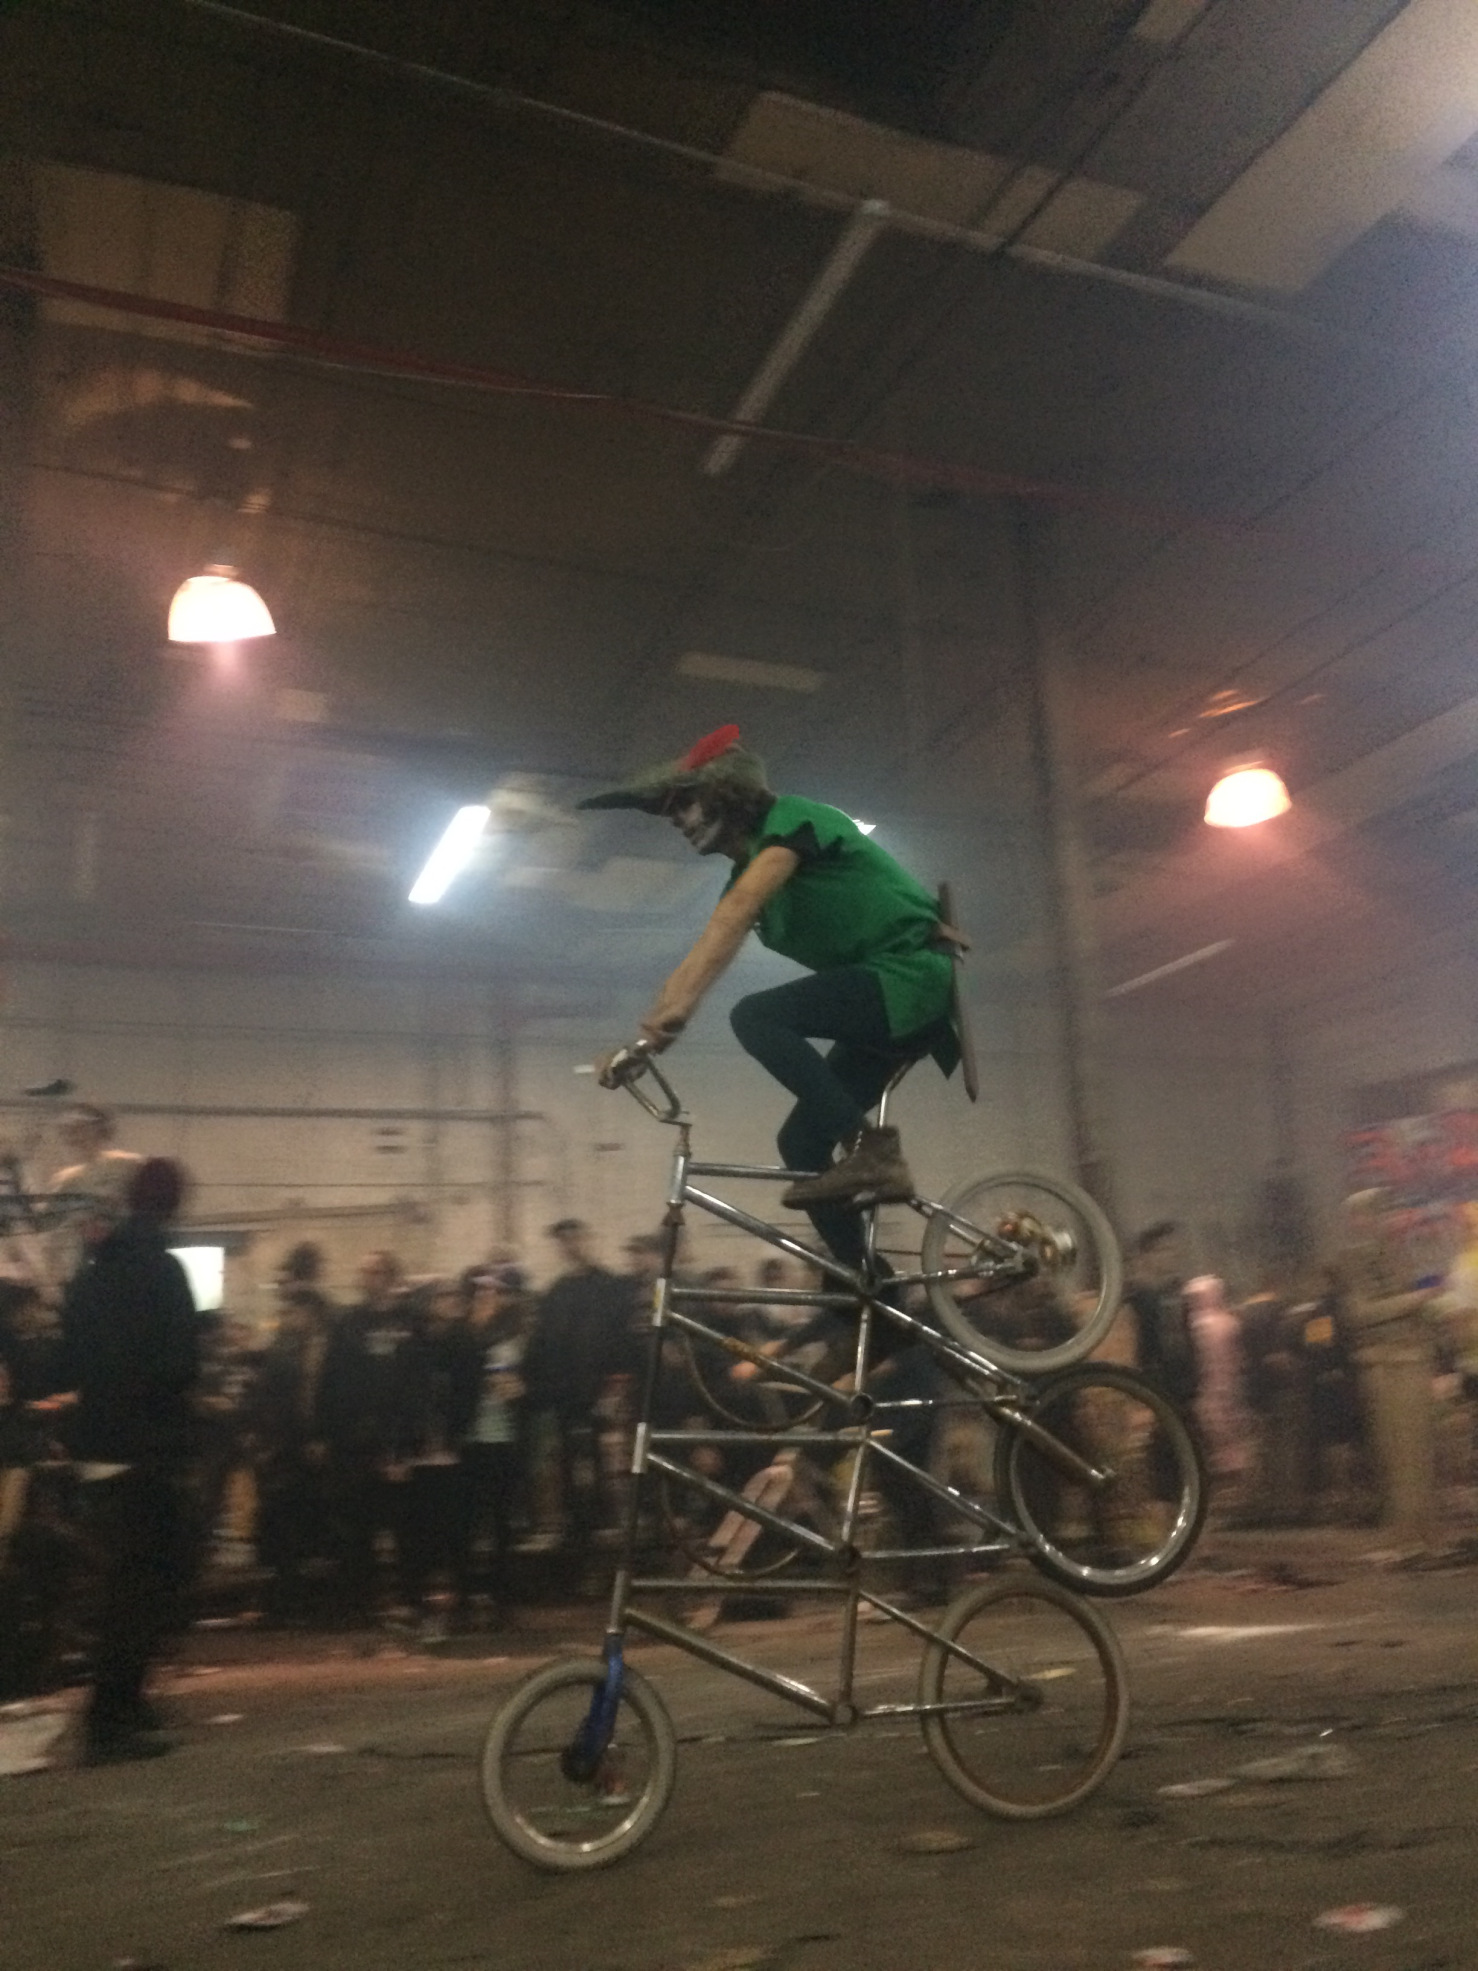 Bike Kill 2016. Bushwick, Brooklyn, New York. This quadruple tall bike was one of the many ingenious and freaky bicycles at the Halloween event. Photo courtesy of Erika Longino.